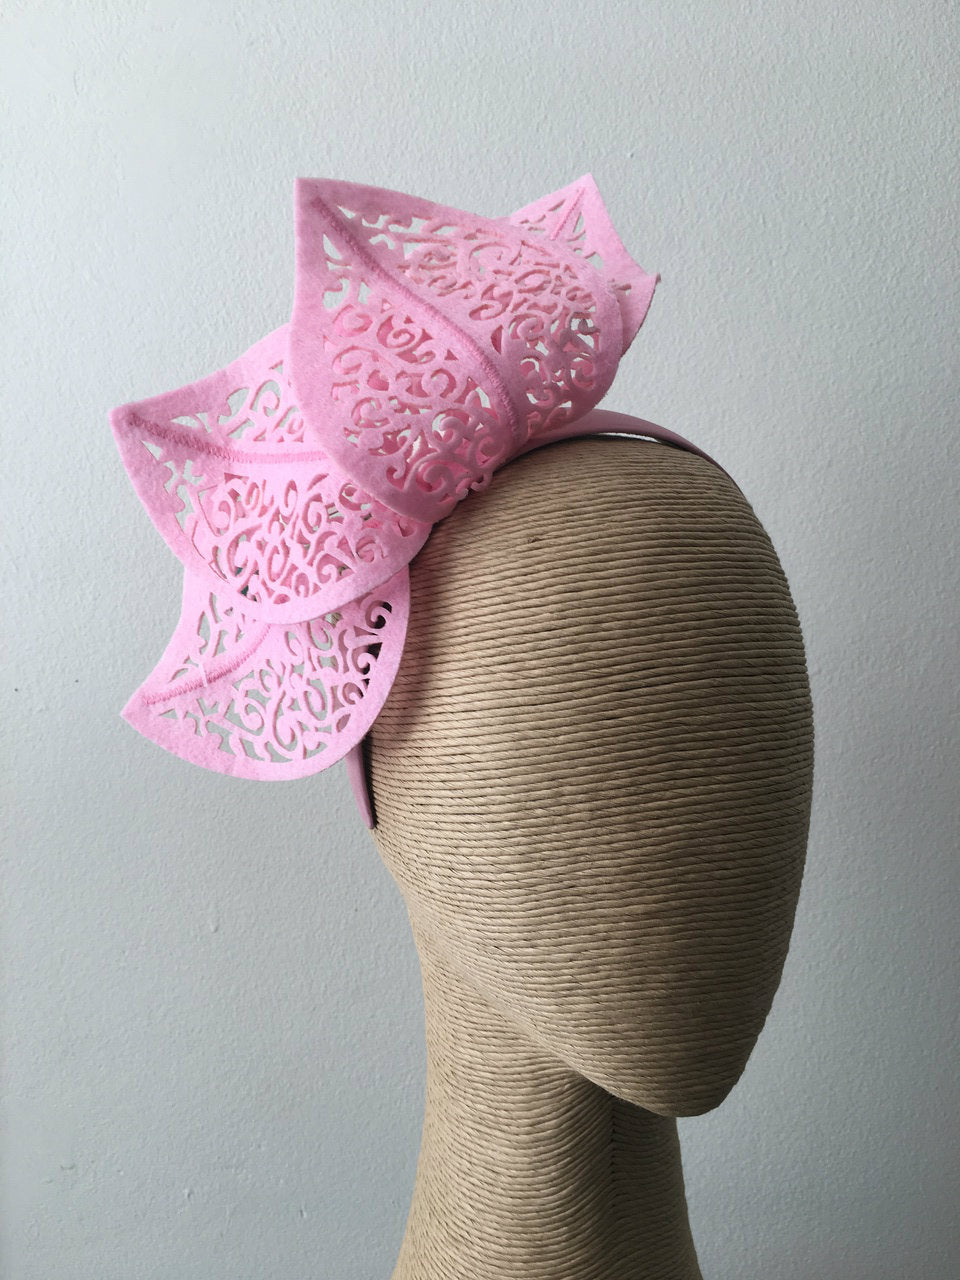 Max Alexander Cutout Leaf Crown in Baby Pink on a Headband